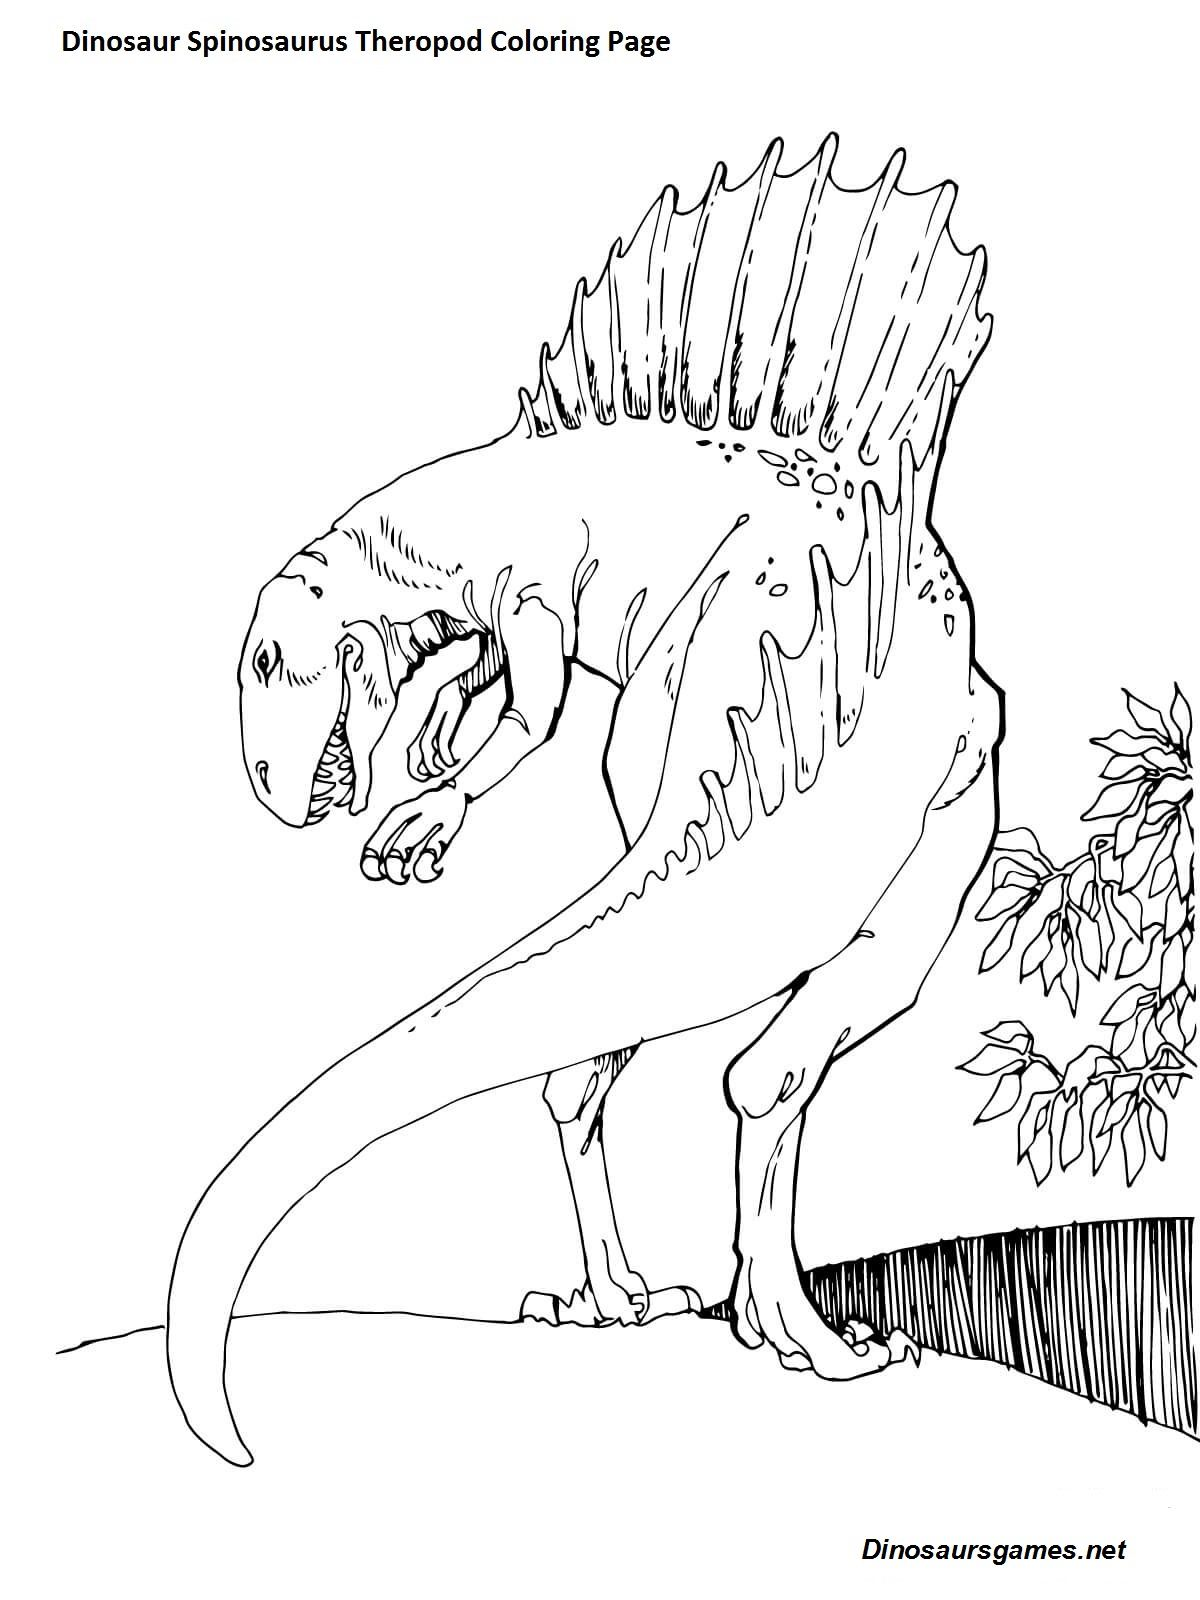 Idea By Dinosaur Games On Spinosaurus Dinosaur Coloring Page